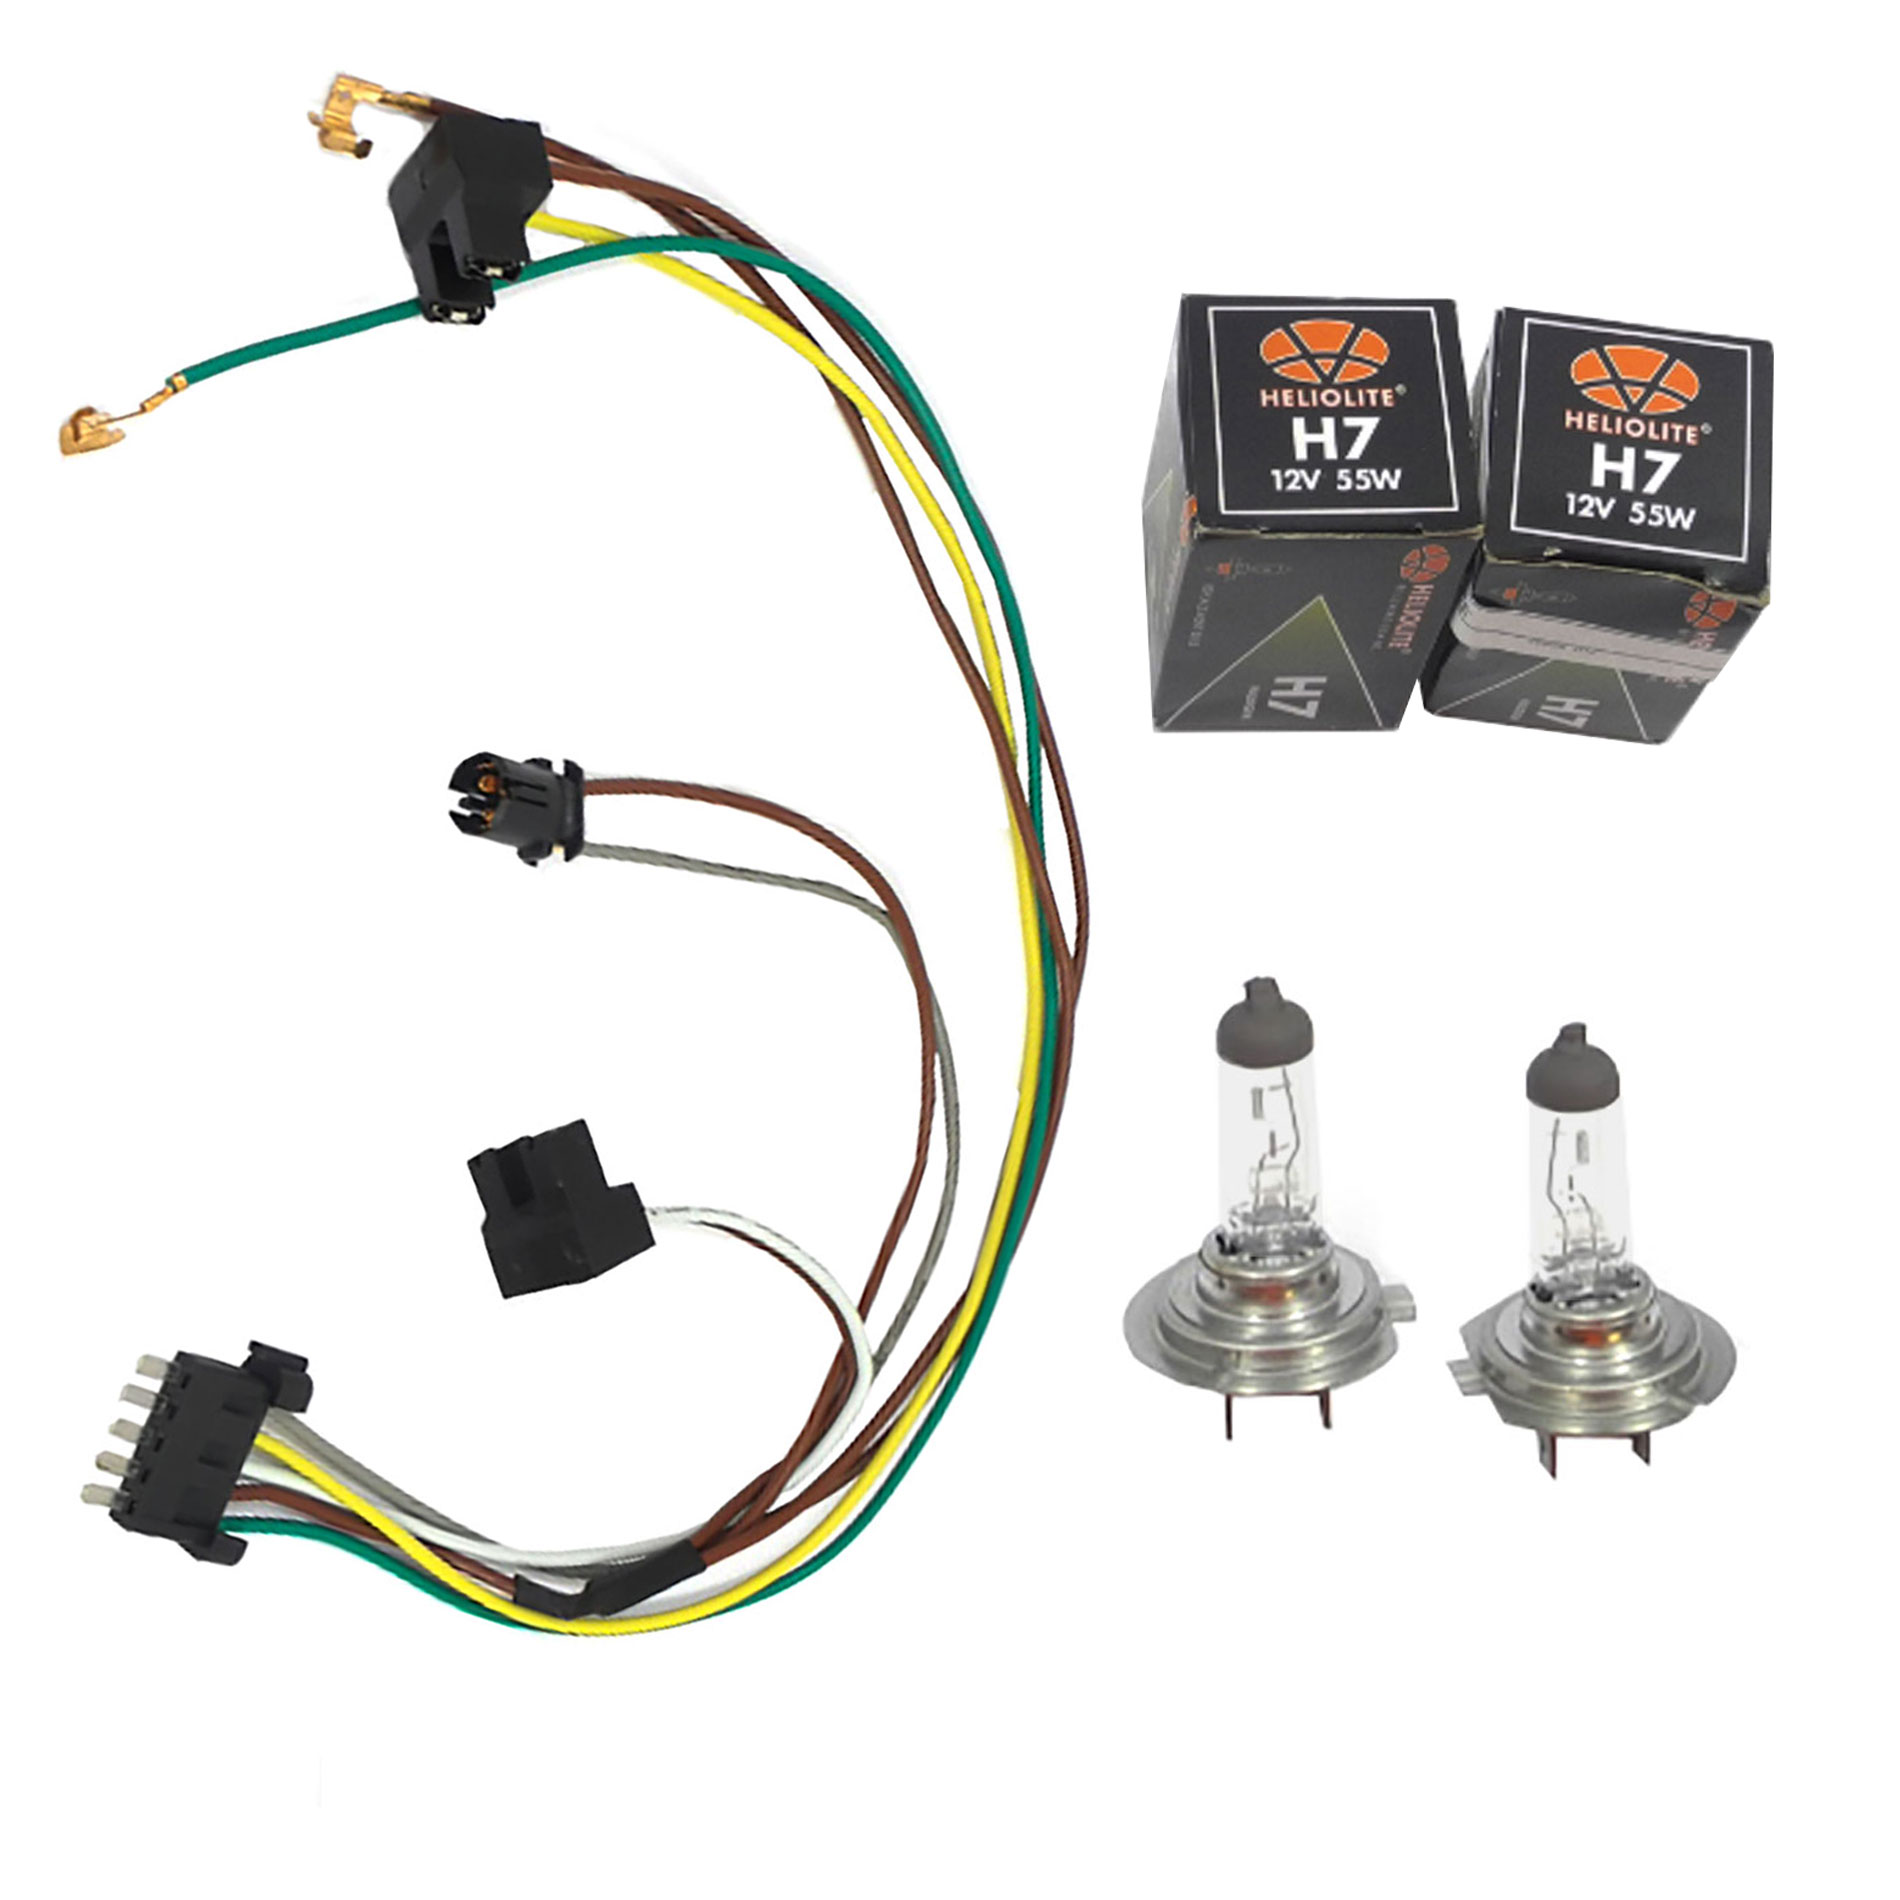 hight resolution of details about for c230 c320 benz headlight wiring harness u0026 headlight bulb h7 55w left